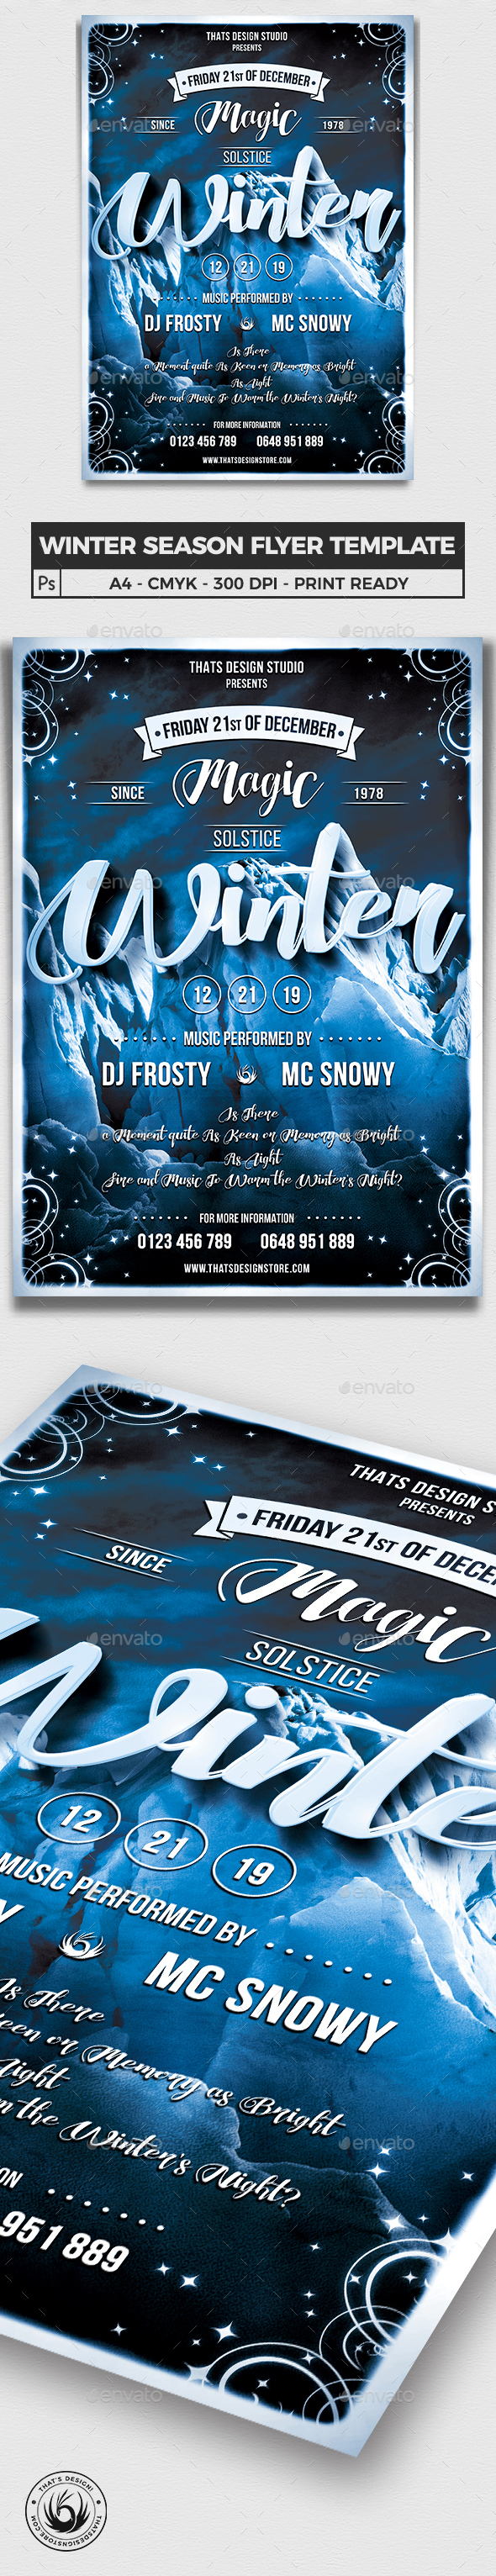 Winter Season Flyer Template V1 - Clubs & Parties Events